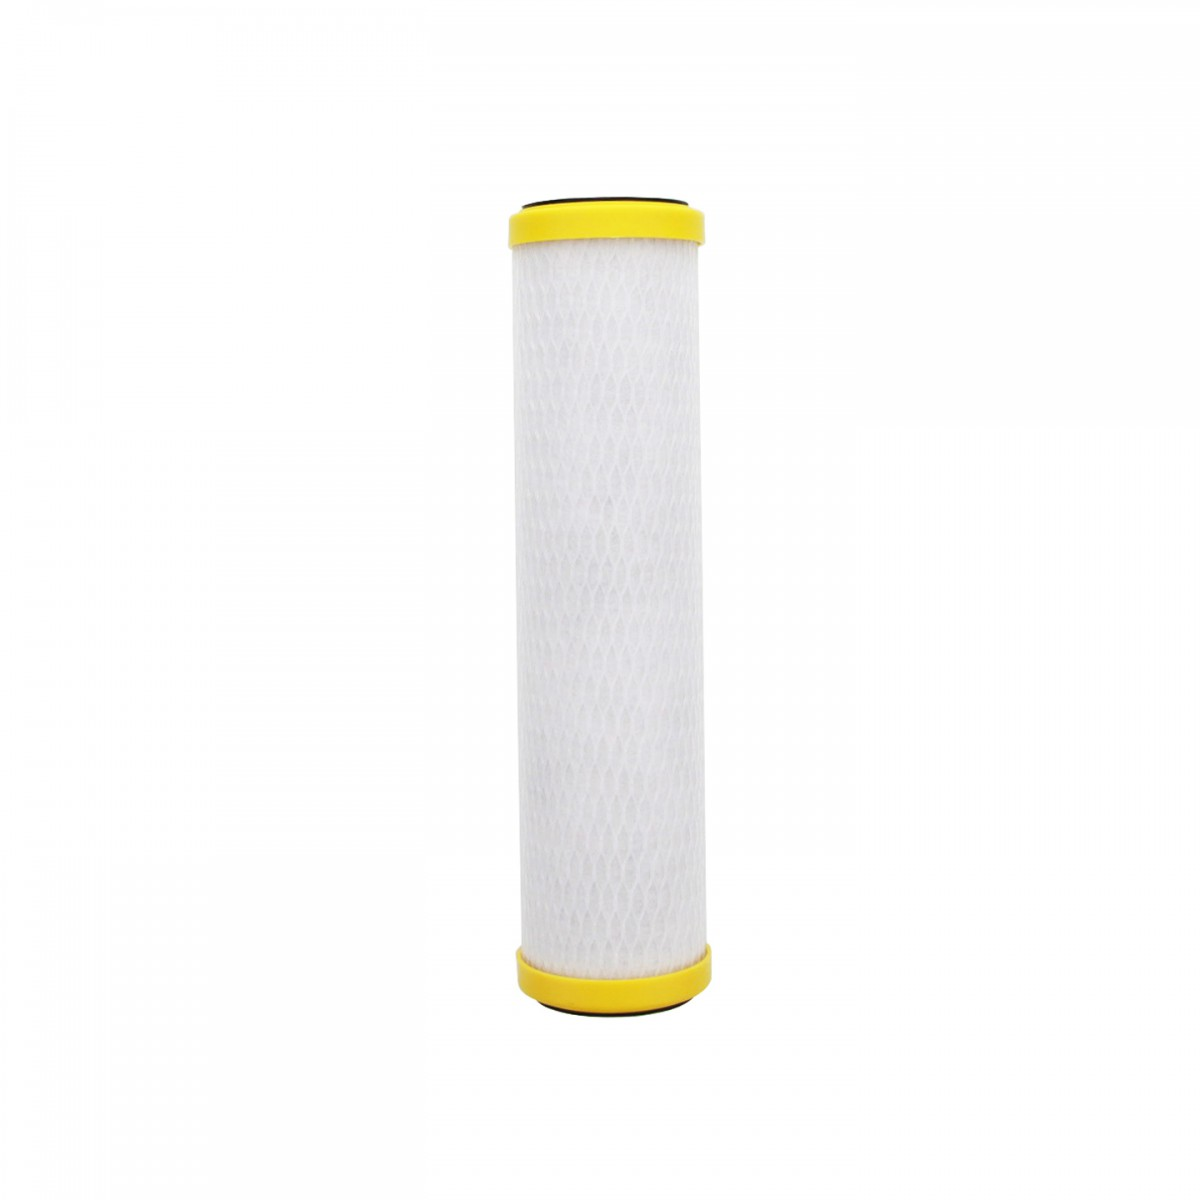 Ge Refrigerator Filter Replacement Cartridge Fxulc Ge Smartwater Undersink Filter Replacement Cartridge